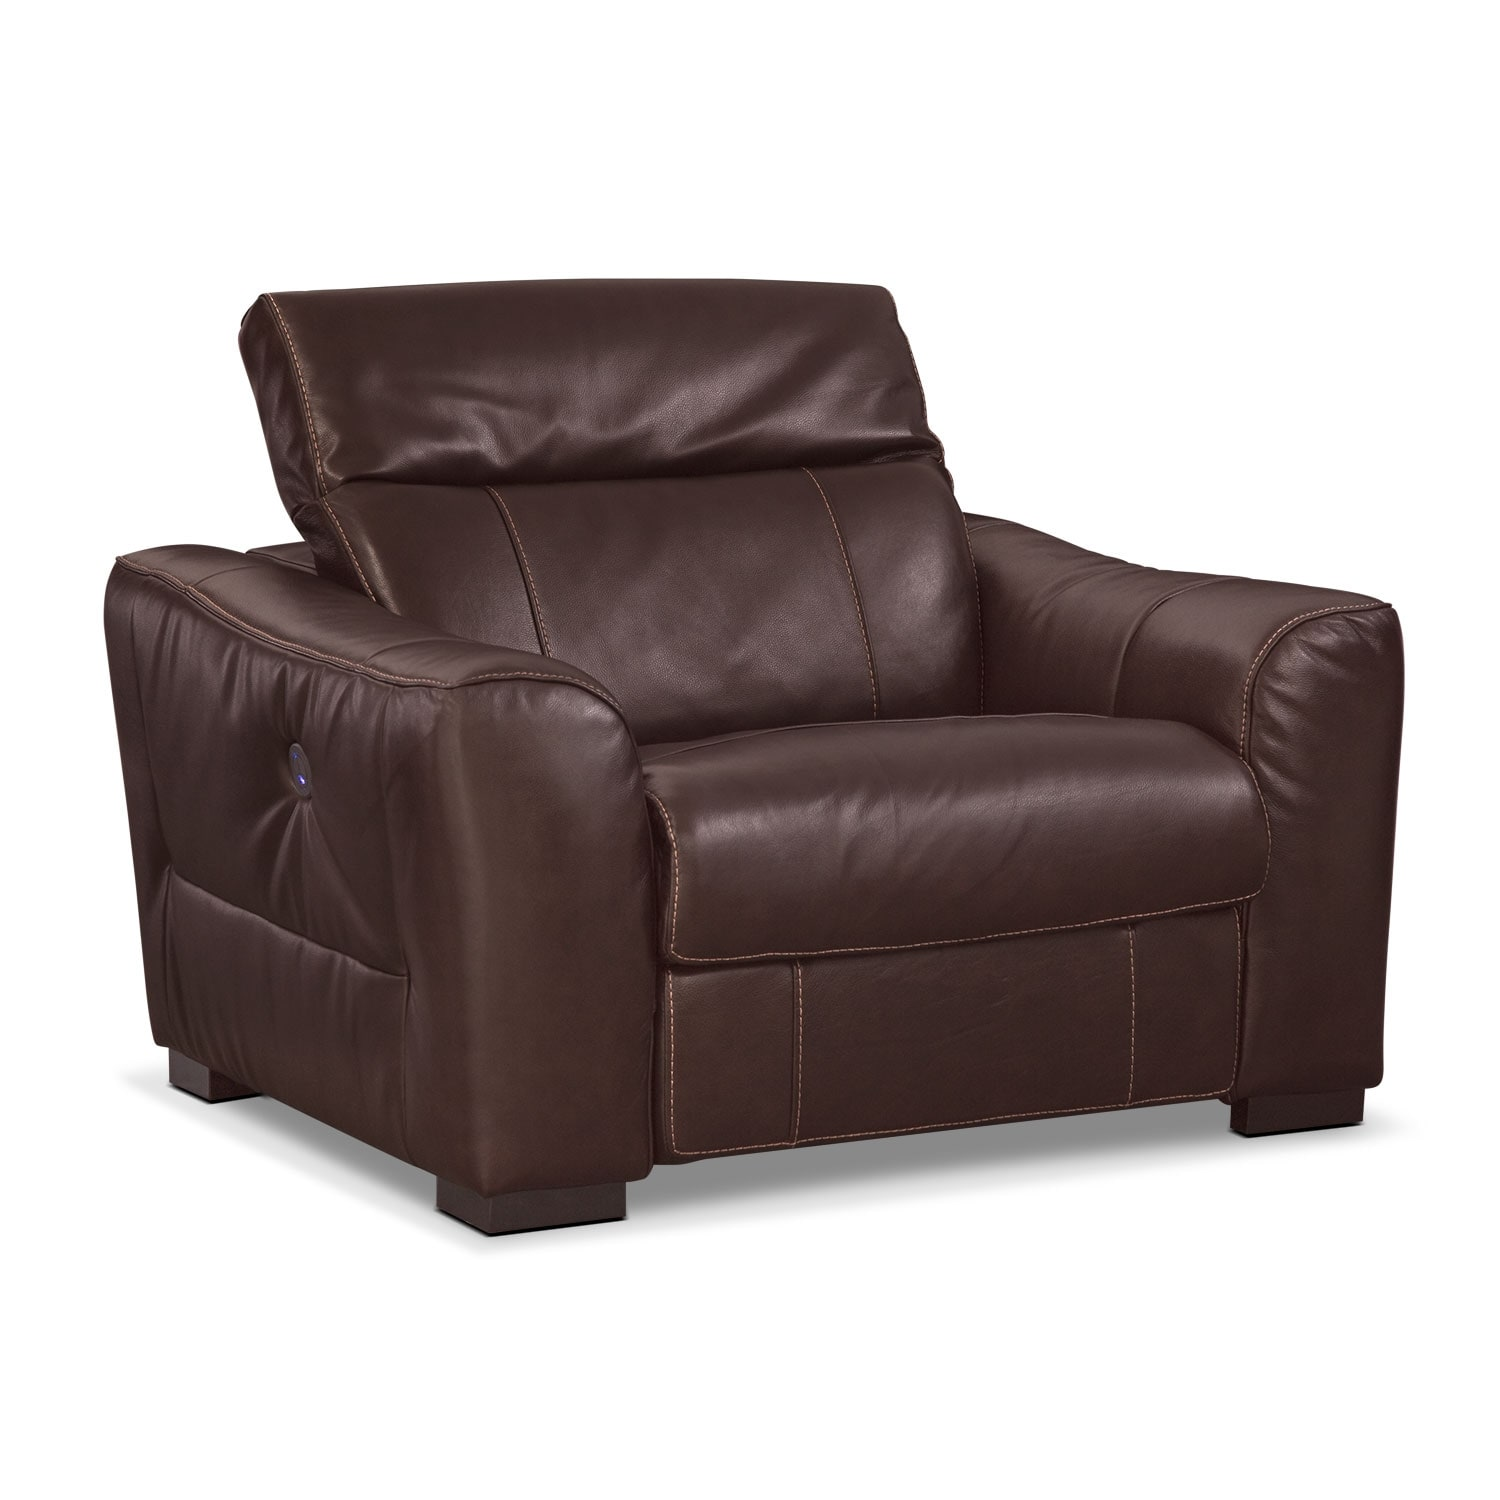 Living Room Furniture - Palisade Brown Power Recliner